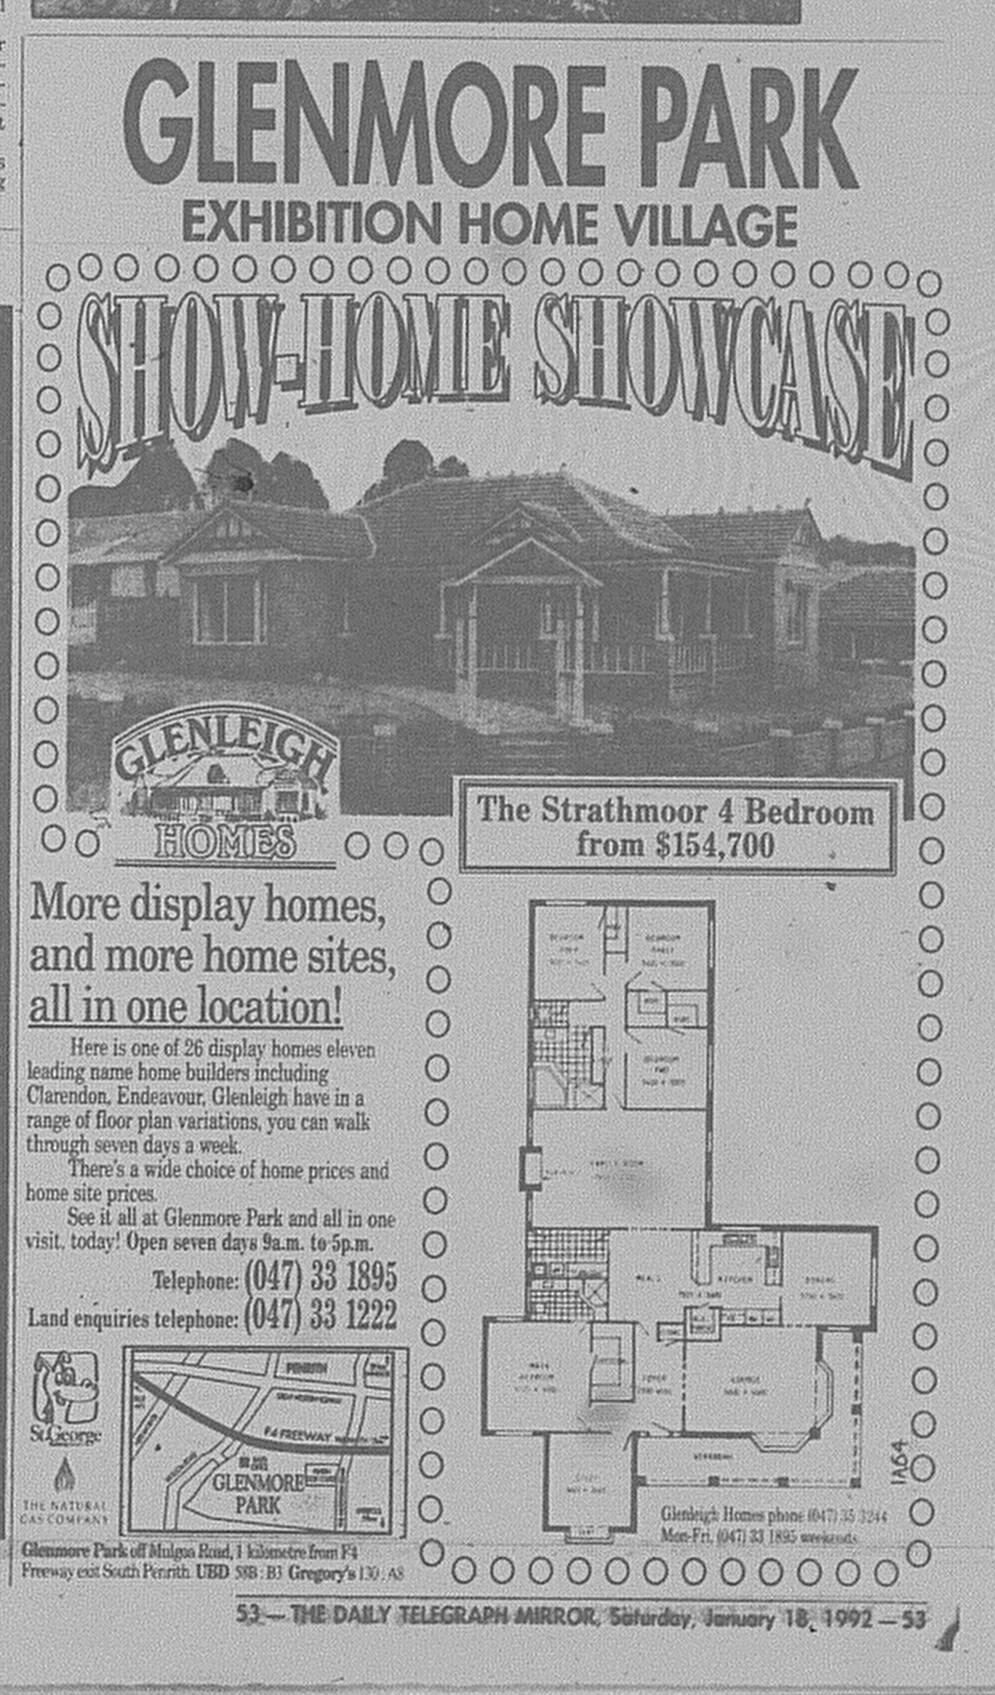 Glenmore Park Model Homes Ad January 18 1992 Daily Telegraph 53